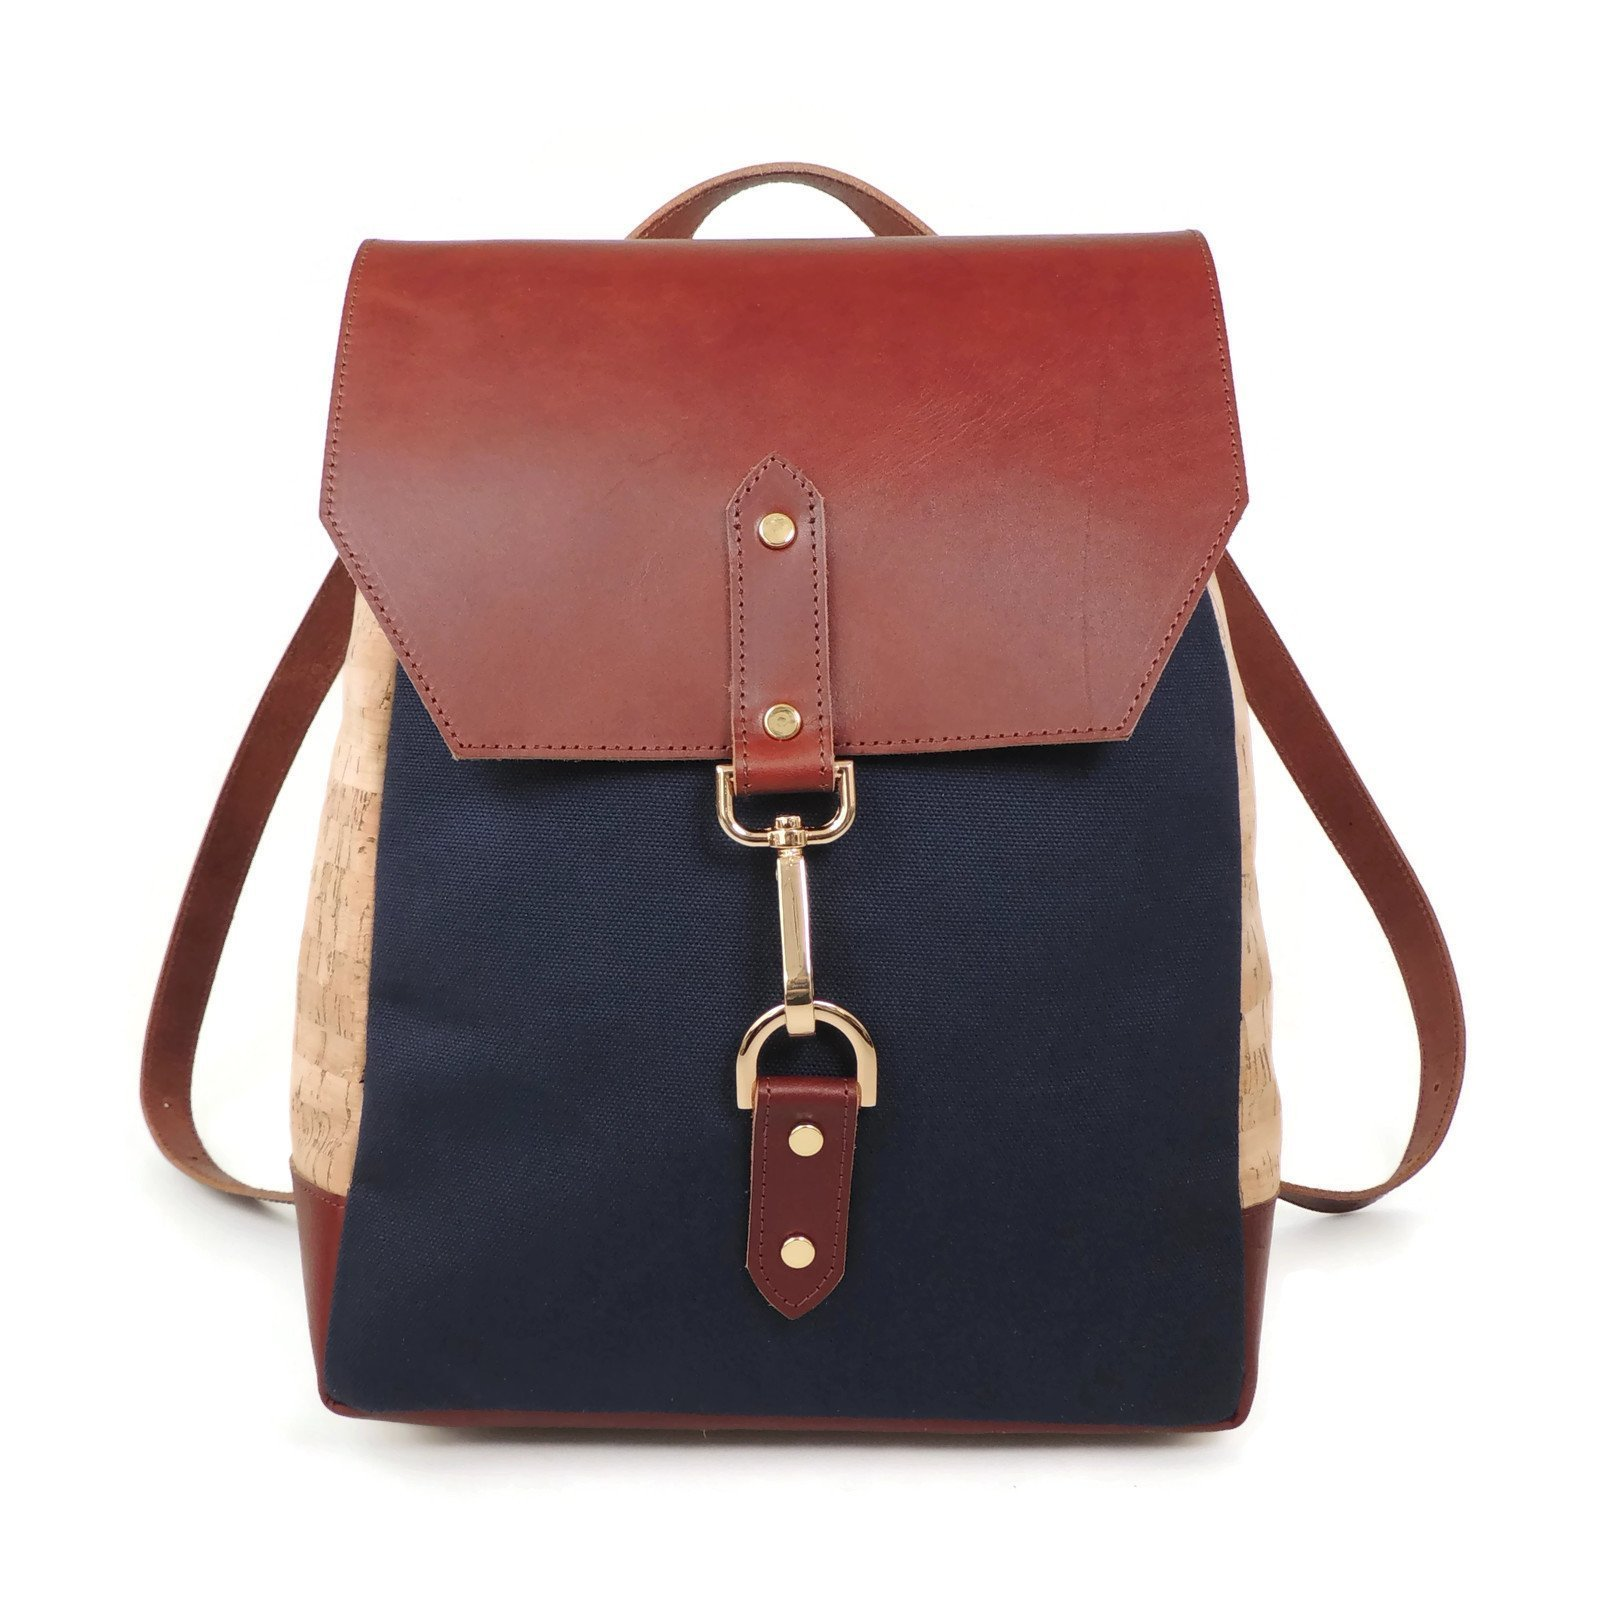 Cork, Navy Canvas, and Brown Leather Backpack by Spicer Bags